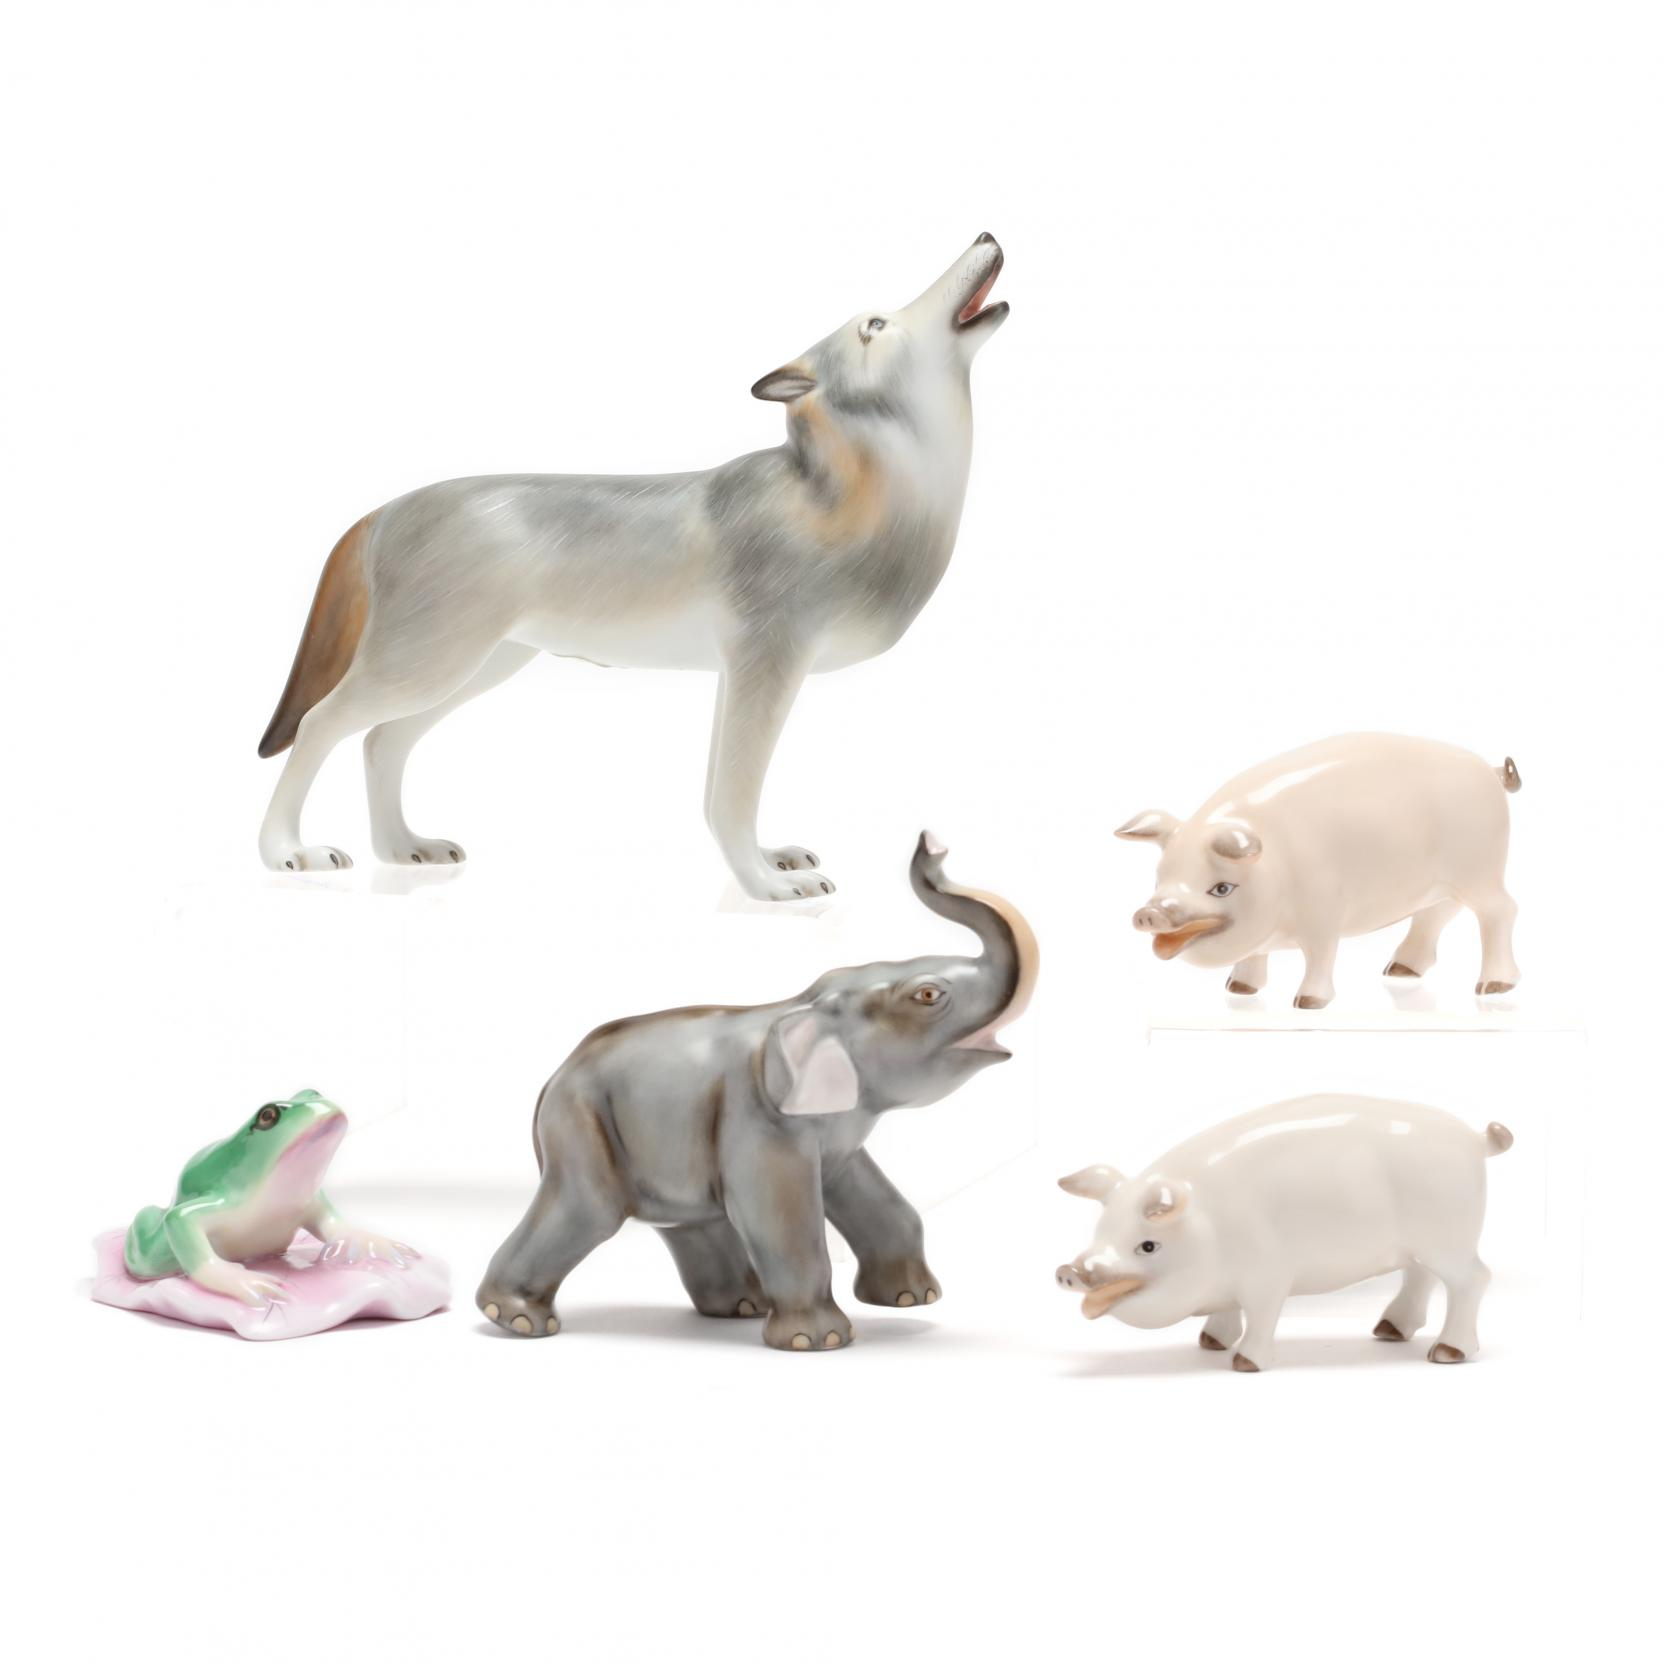 a-group-of-five-herend-porcelain-natural-animals